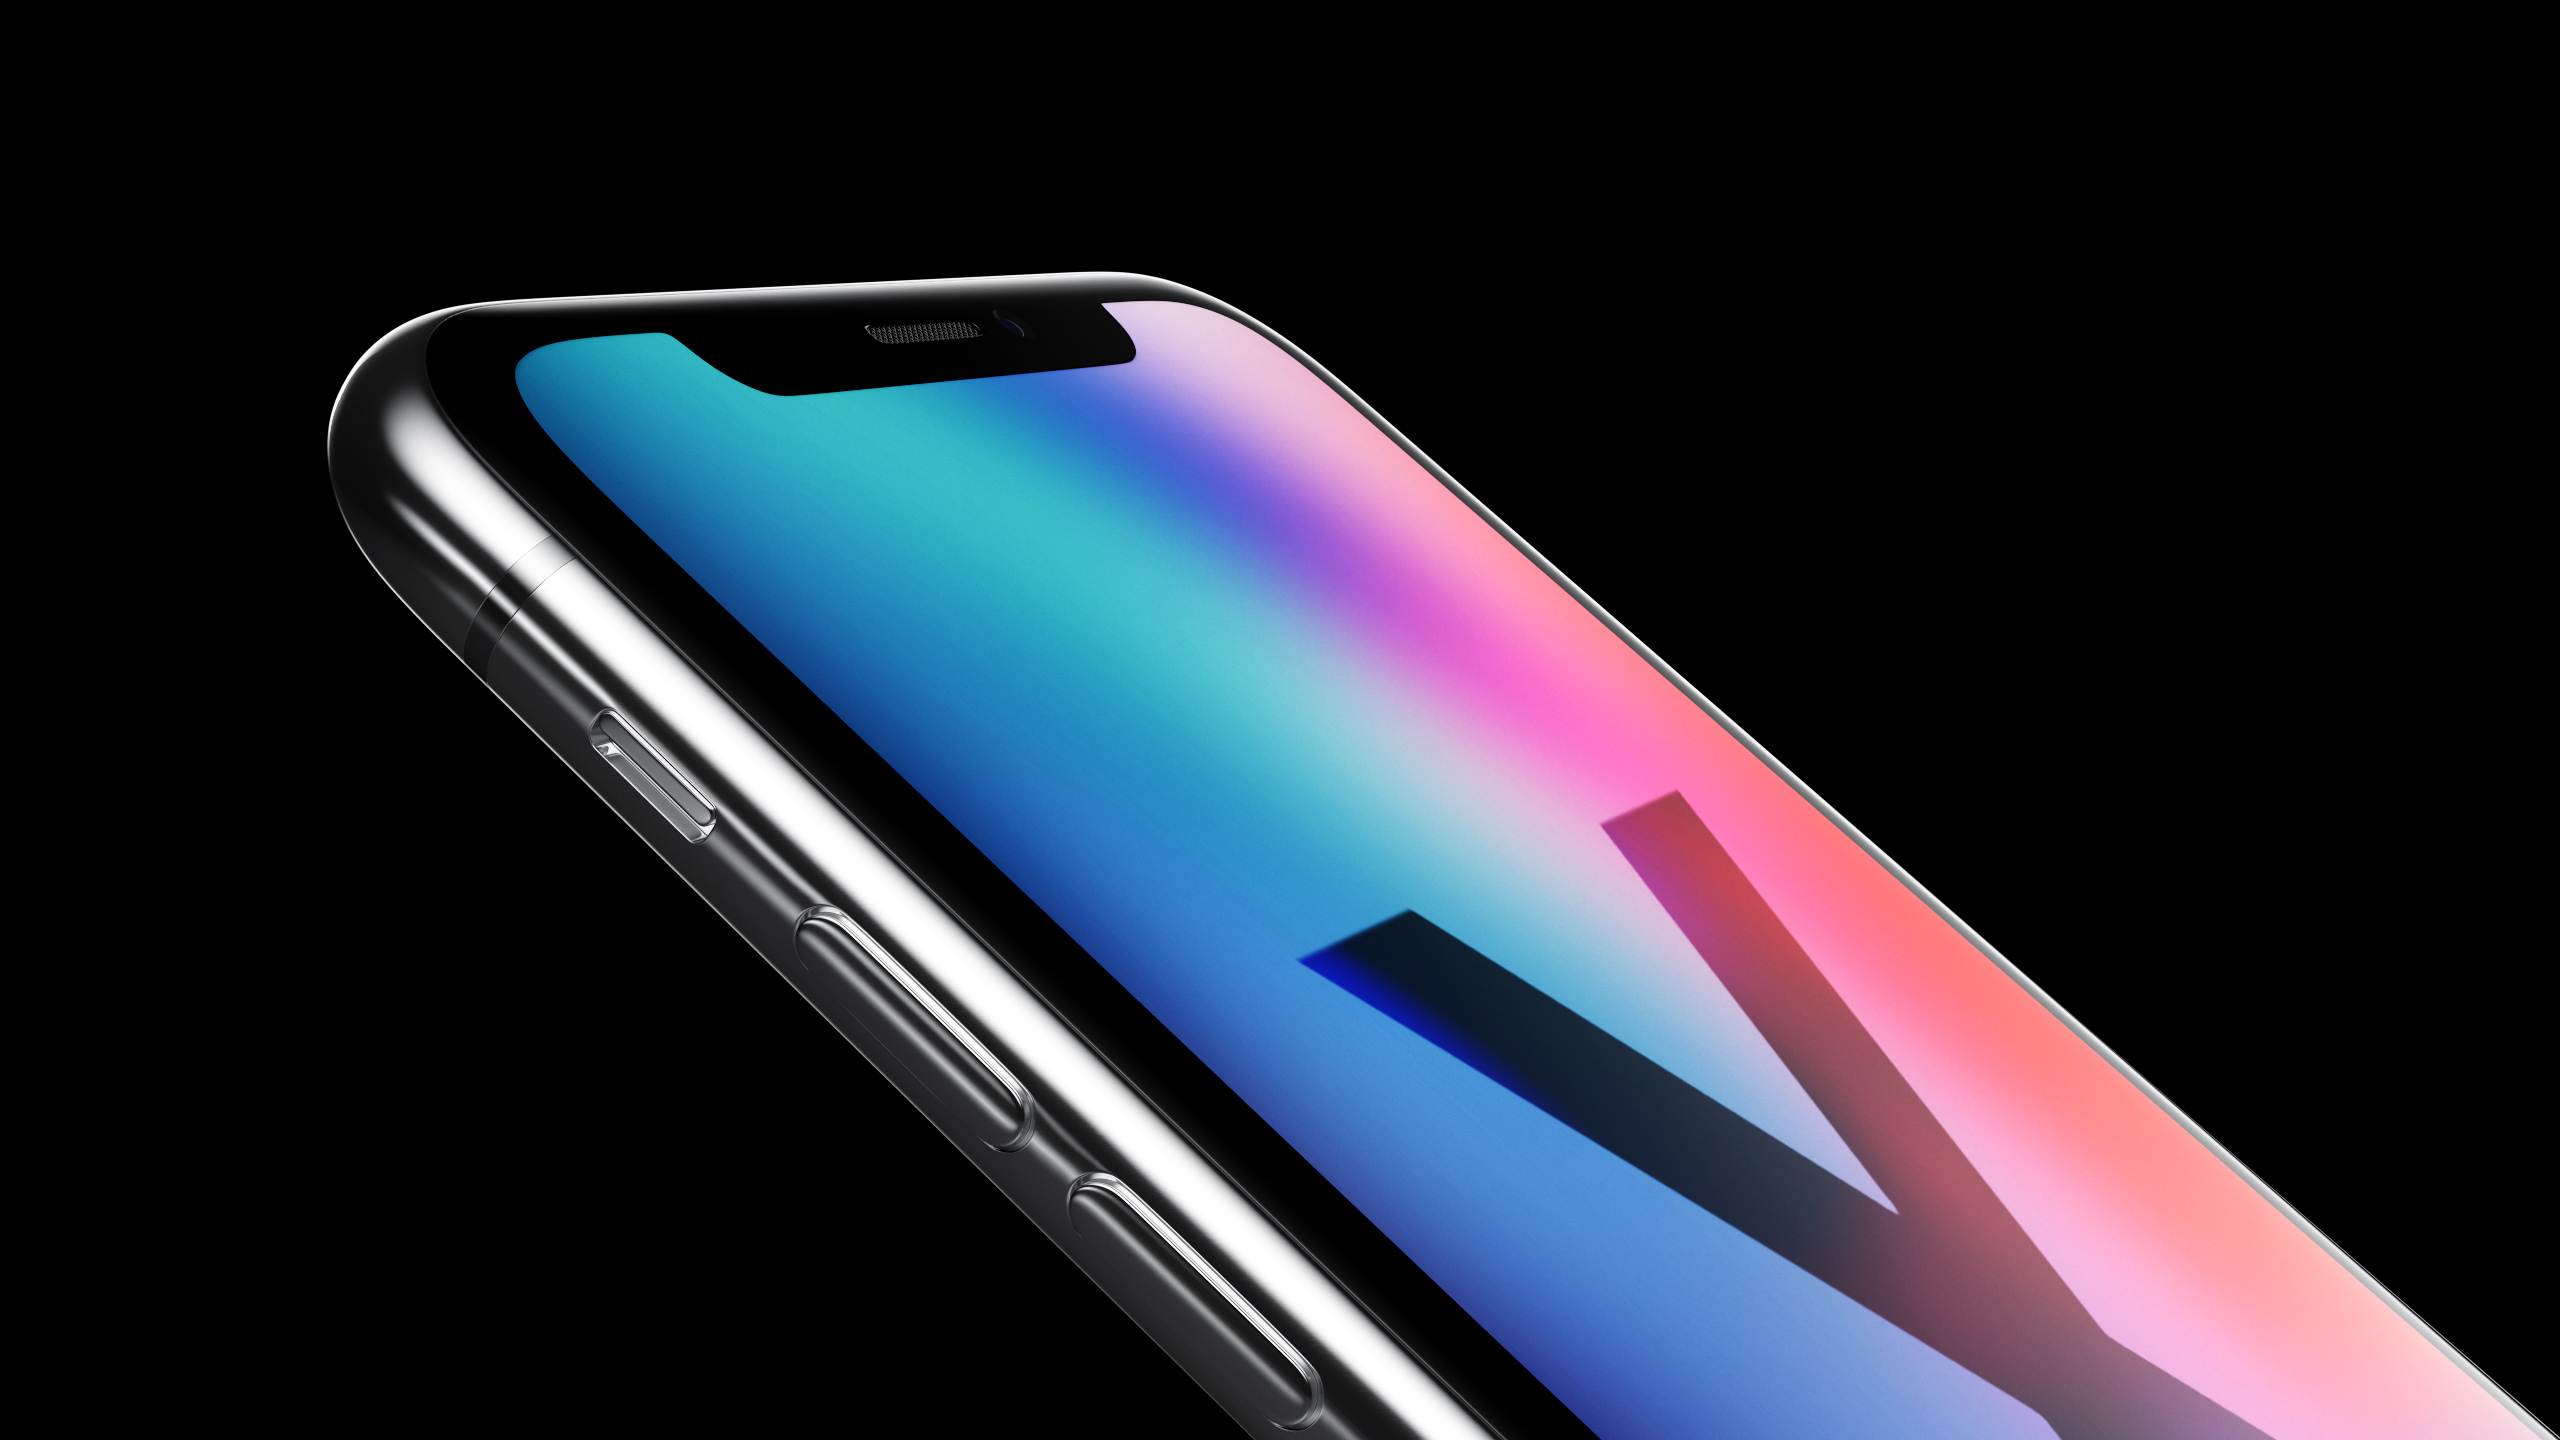 iPhone X iPhone 10 HD Wallpapers   HD Wallpapers iPhone X iPhone 10 HD Wallpapers